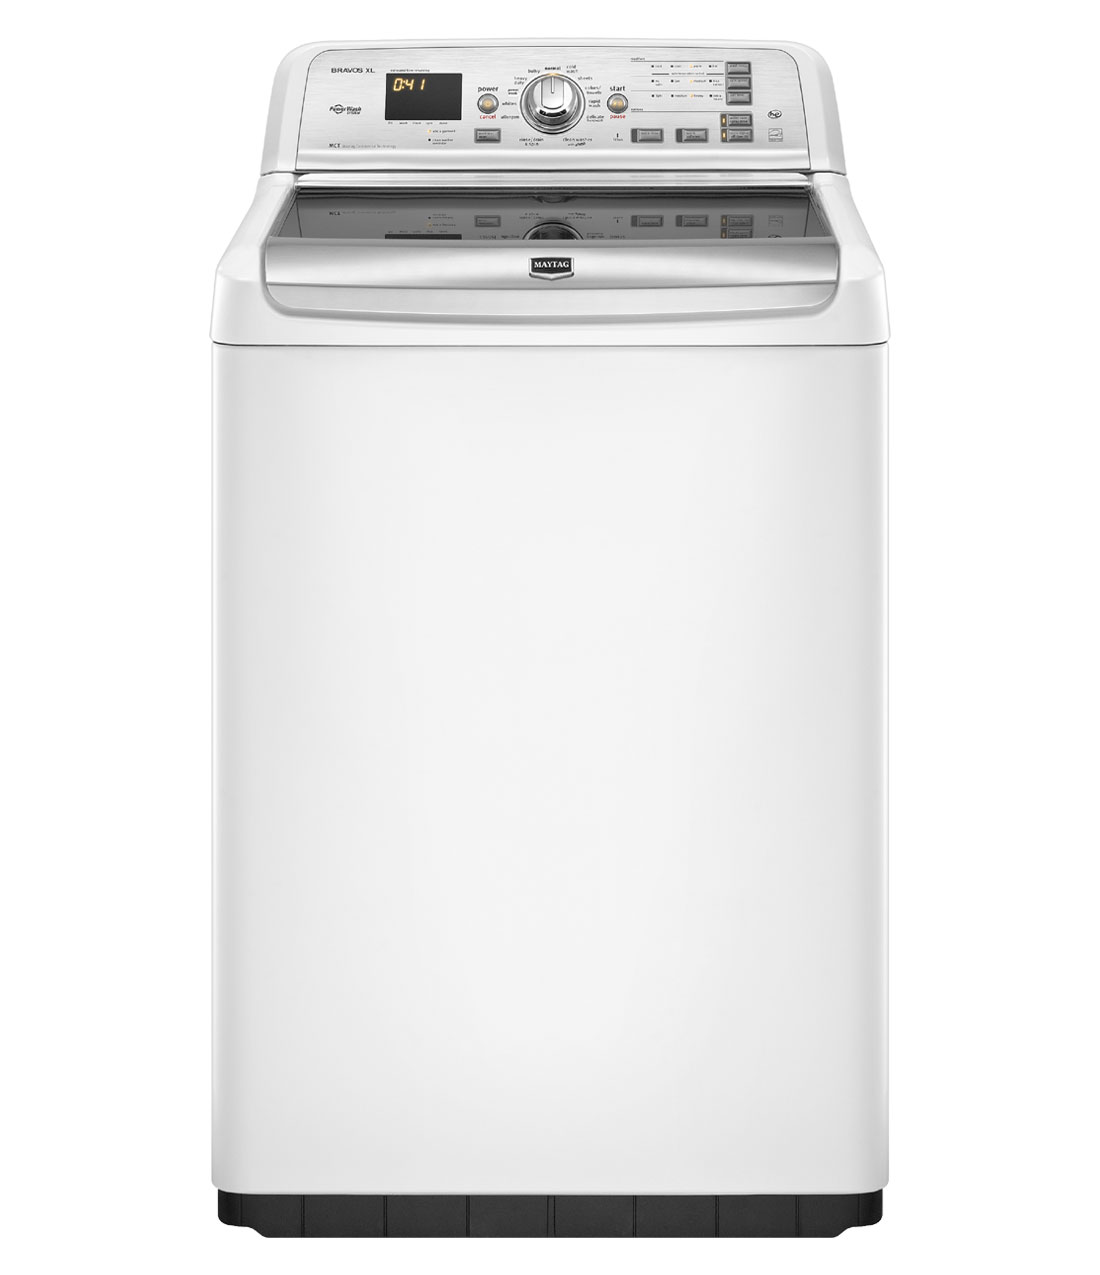 Maytag Bravos XL 4.6 cu. ft. High-Efficiency Top Load Washer in White (Model: MVWB850YW) - Reviews of Top 11 Top Load Washers